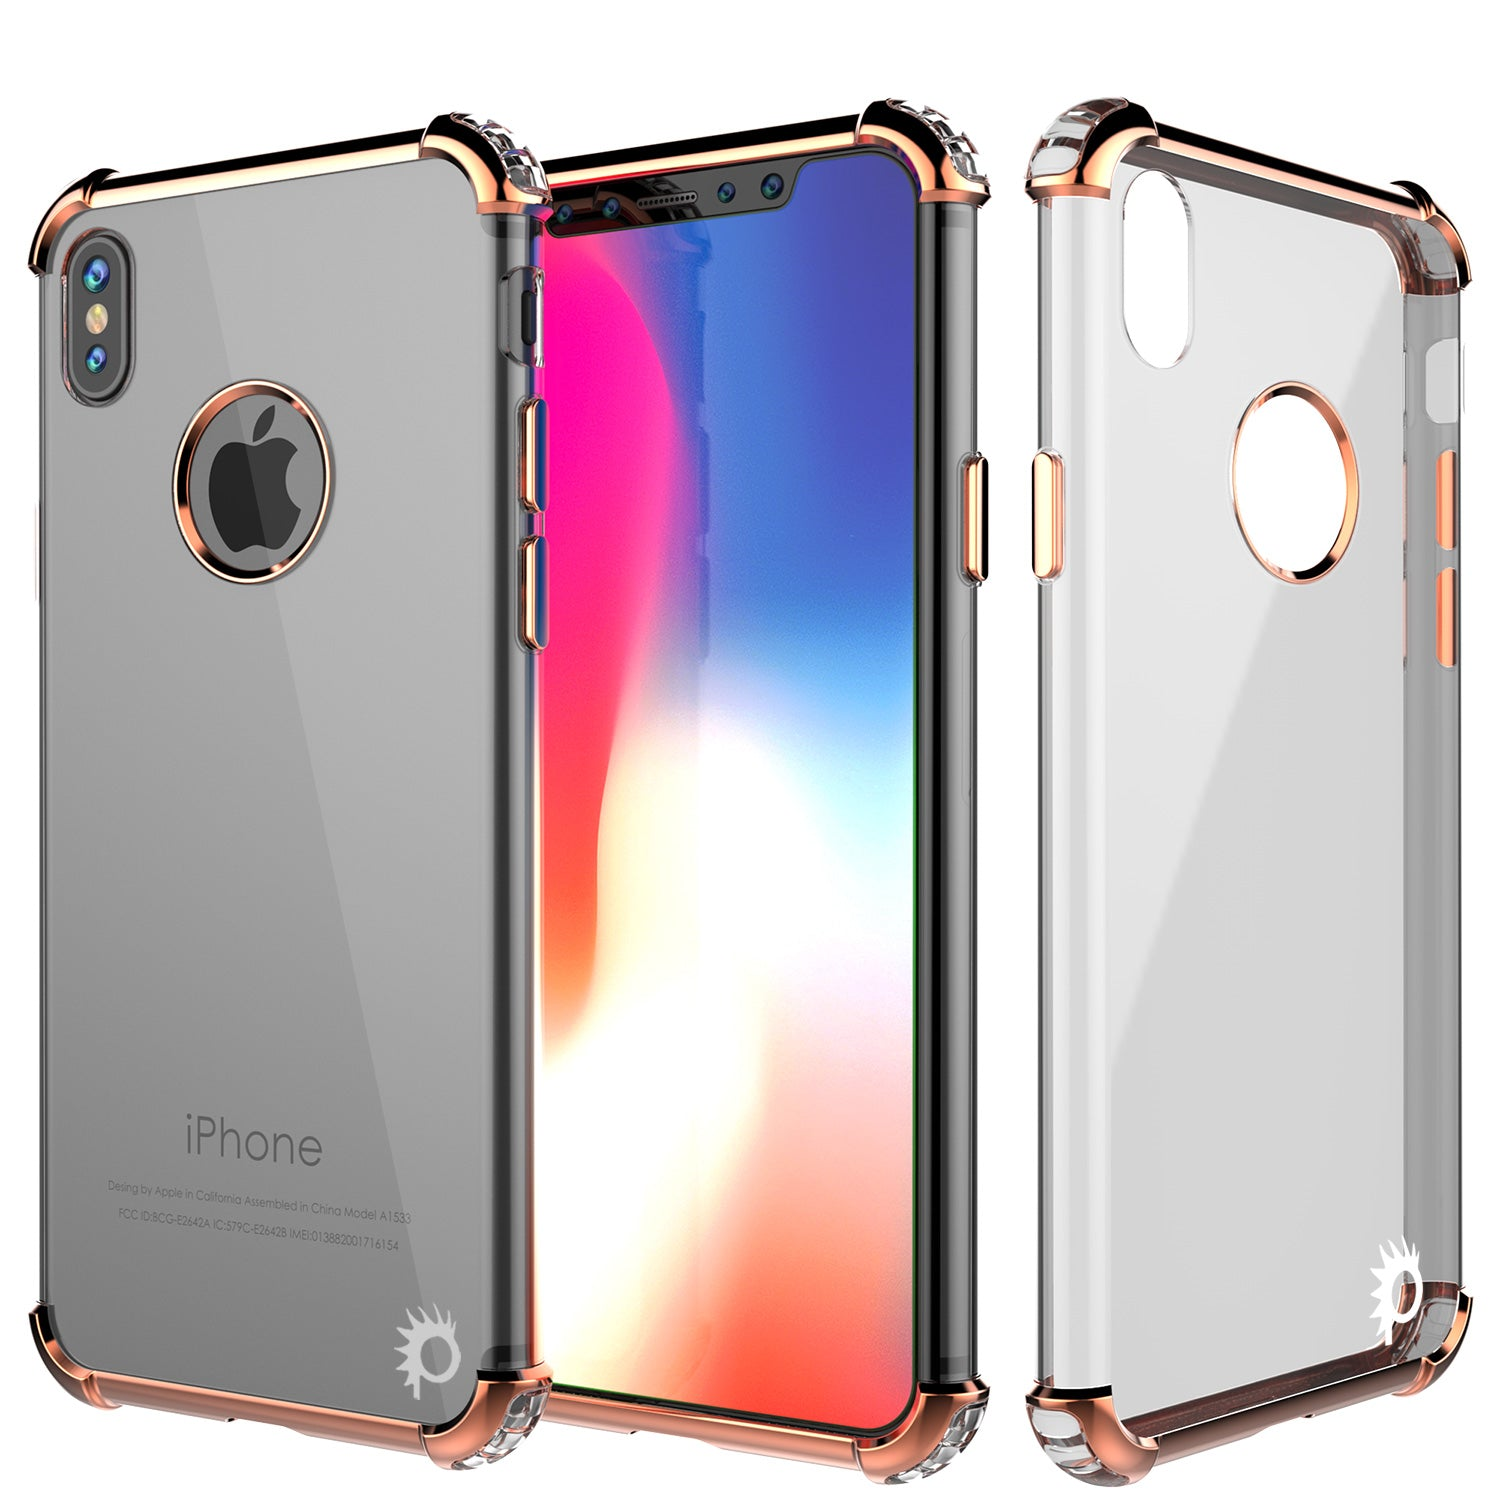 iPhone X Case, Punkcase BLAZE RoseGold Series Protective Cover W/ PunkShield Screen Protector